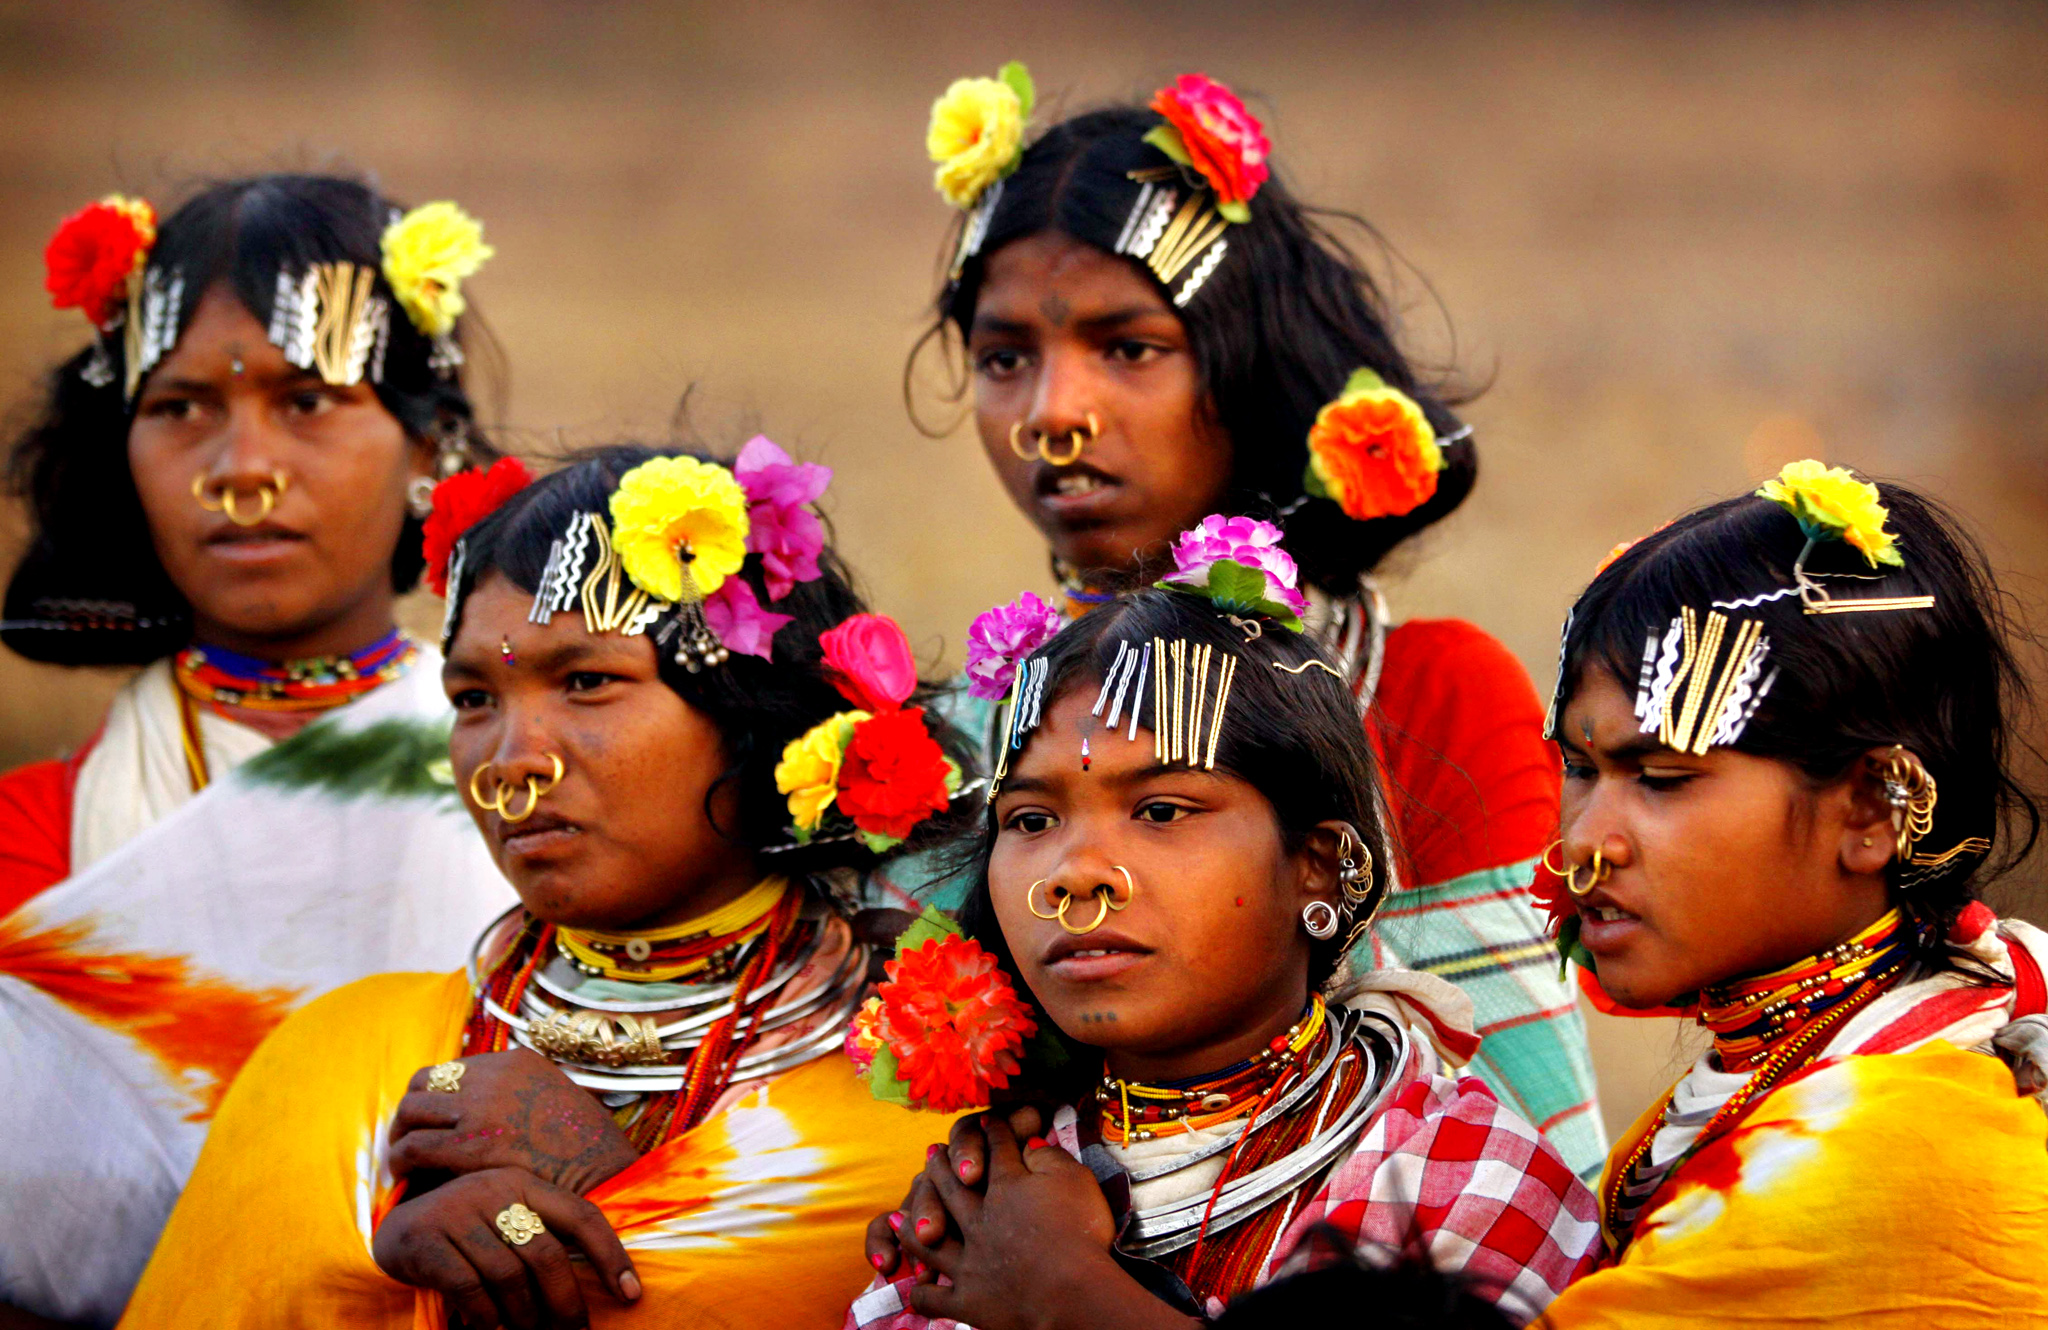 members of Indiaís Dongria tribe watch animal sacrifice during the two-day long Niyamraja Festival atop the Niyamgiri hills near Lanjigarh in Kalahandi district, Orissa state, India. Every year, members of this indigenous group celebrate this festival sacrificing animals and birds in worship of their deity. (AP Photo/Biswaranjan Rout)